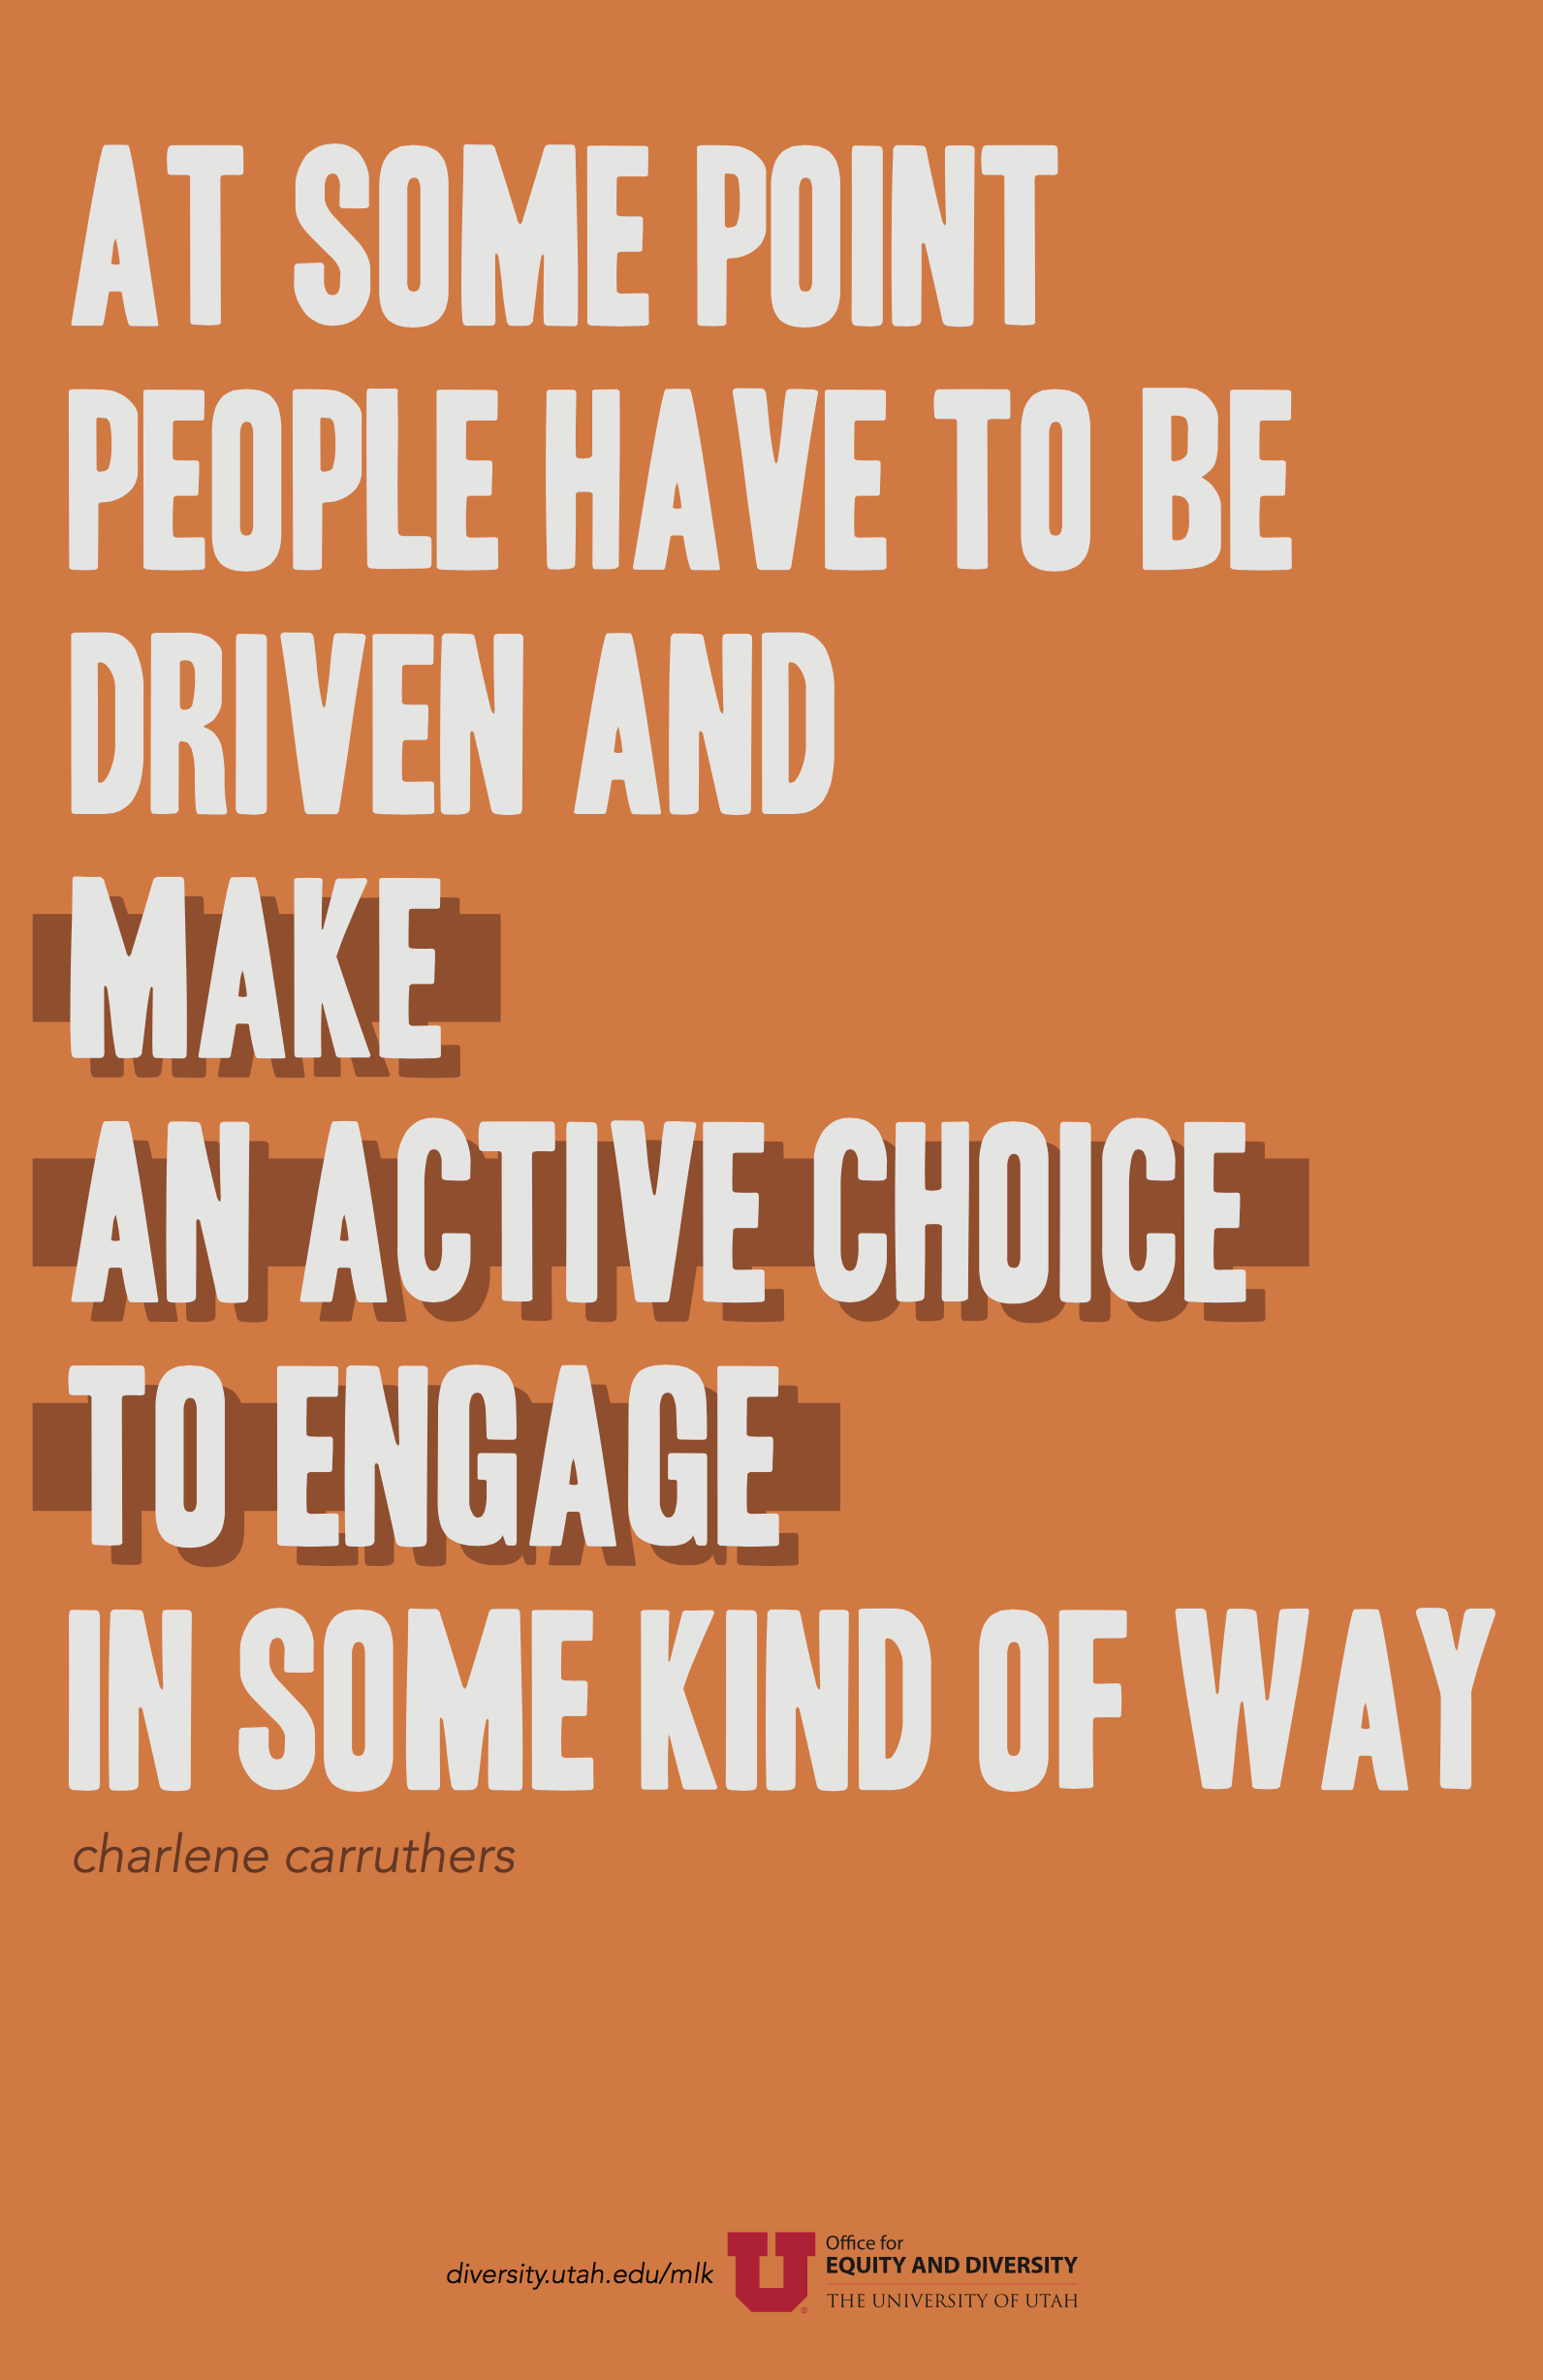 "A dull orange poster with a quote in uppercase light grey text. The quote by Charlene Carruthers reads: ""At some point, people have to be driven and make an active choice to engage in some kind of way."" The words ""make an active choice to engage"" is emphasized in a dark orange shadow and rectangular bar behind the text."